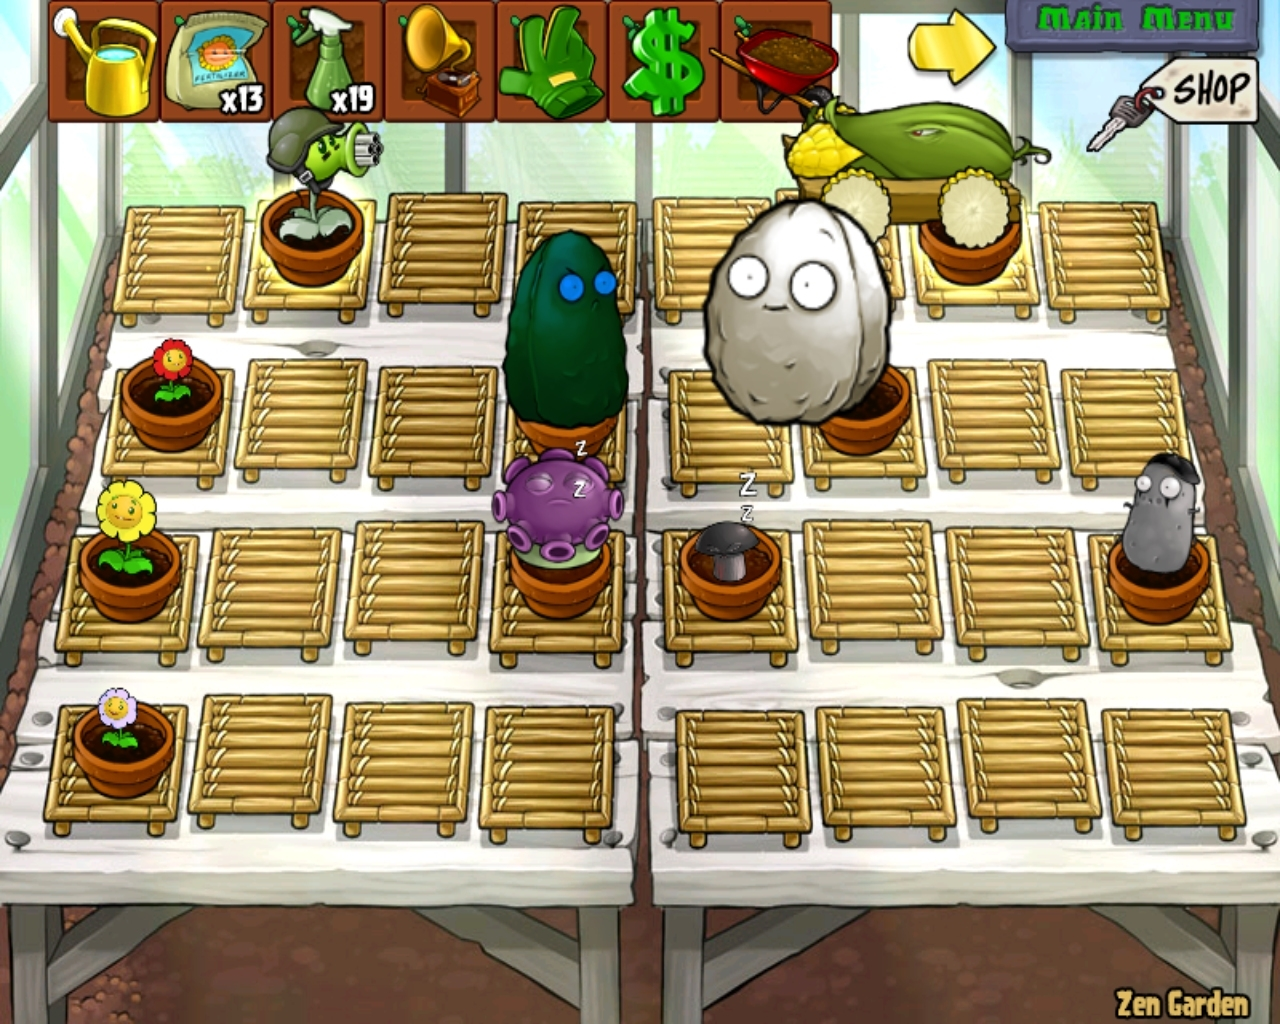 Zen Garden Plants Vs Zombies 2 regarding Zen Garden Plants Vs Zombies Ds